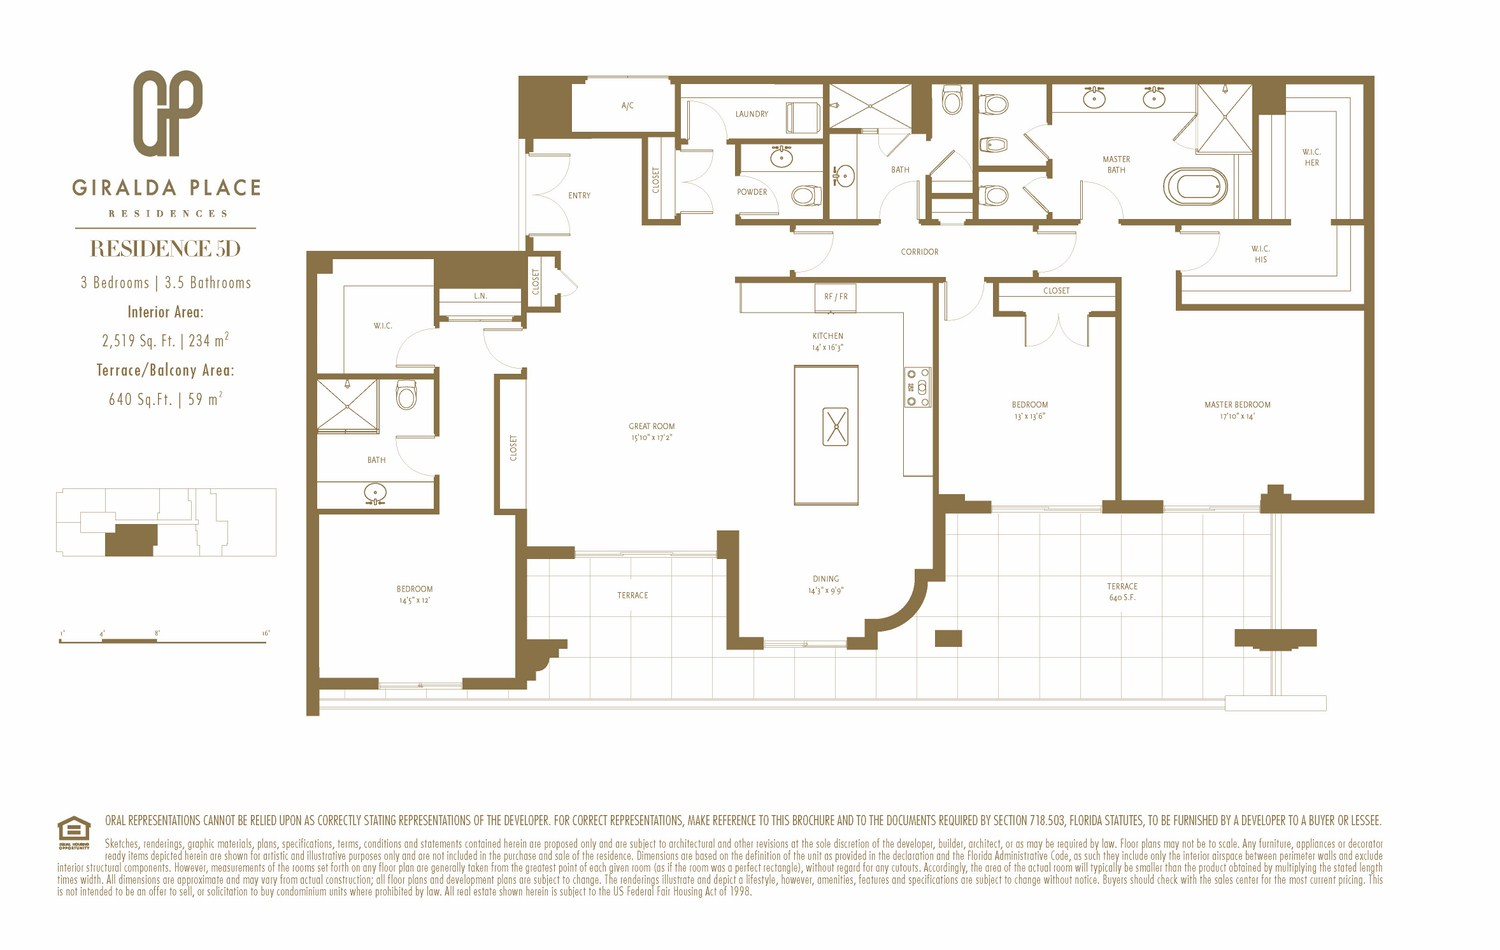 Giralda Place - Floorplan 1